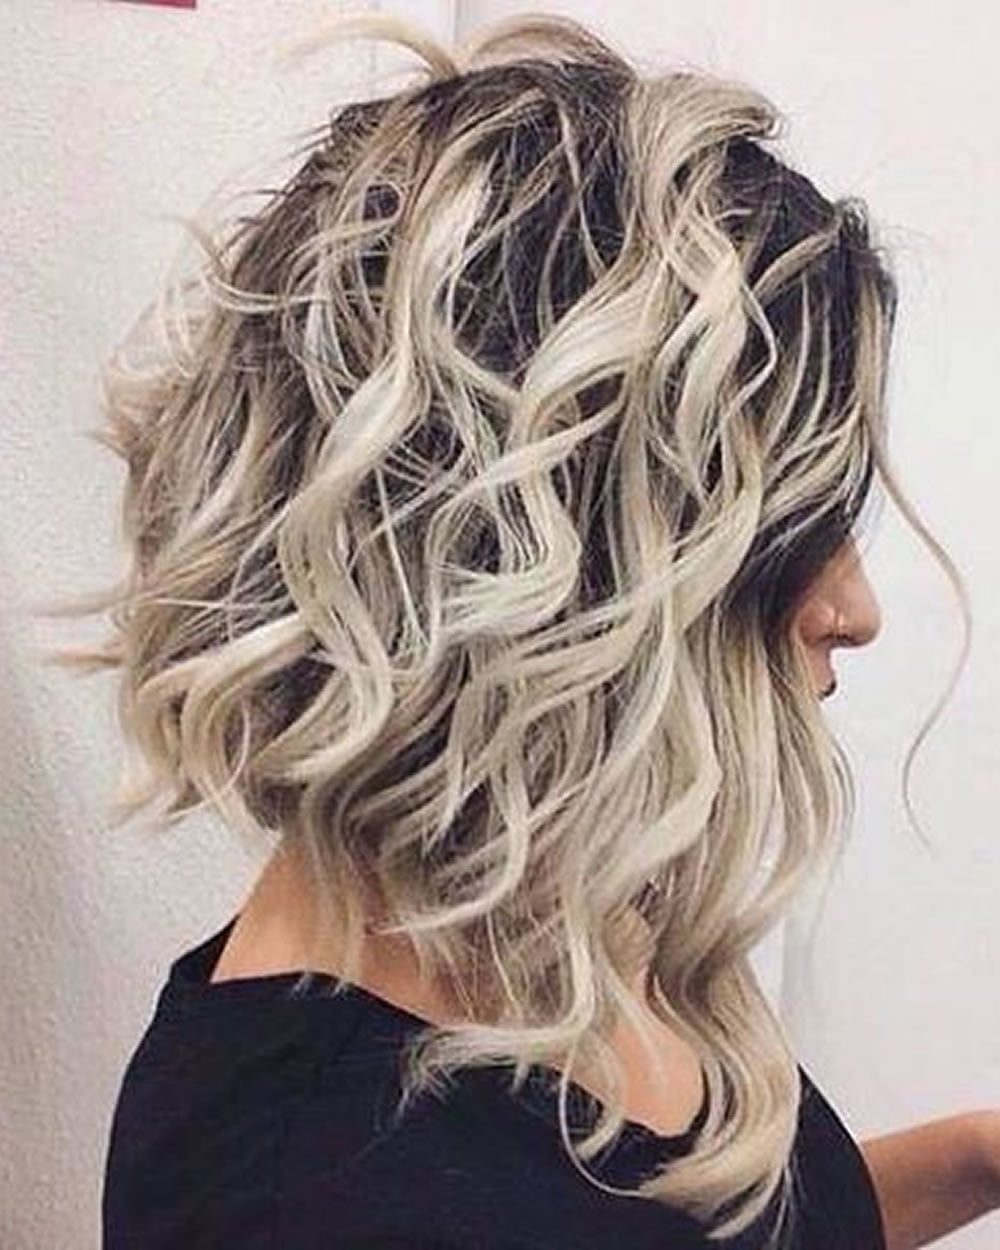 balayage ombre highlights 2018 dark brunette blonde etc hair ideas page 6 hairstyles. Black Bedroom Furniture Sets. Home Design Ideas